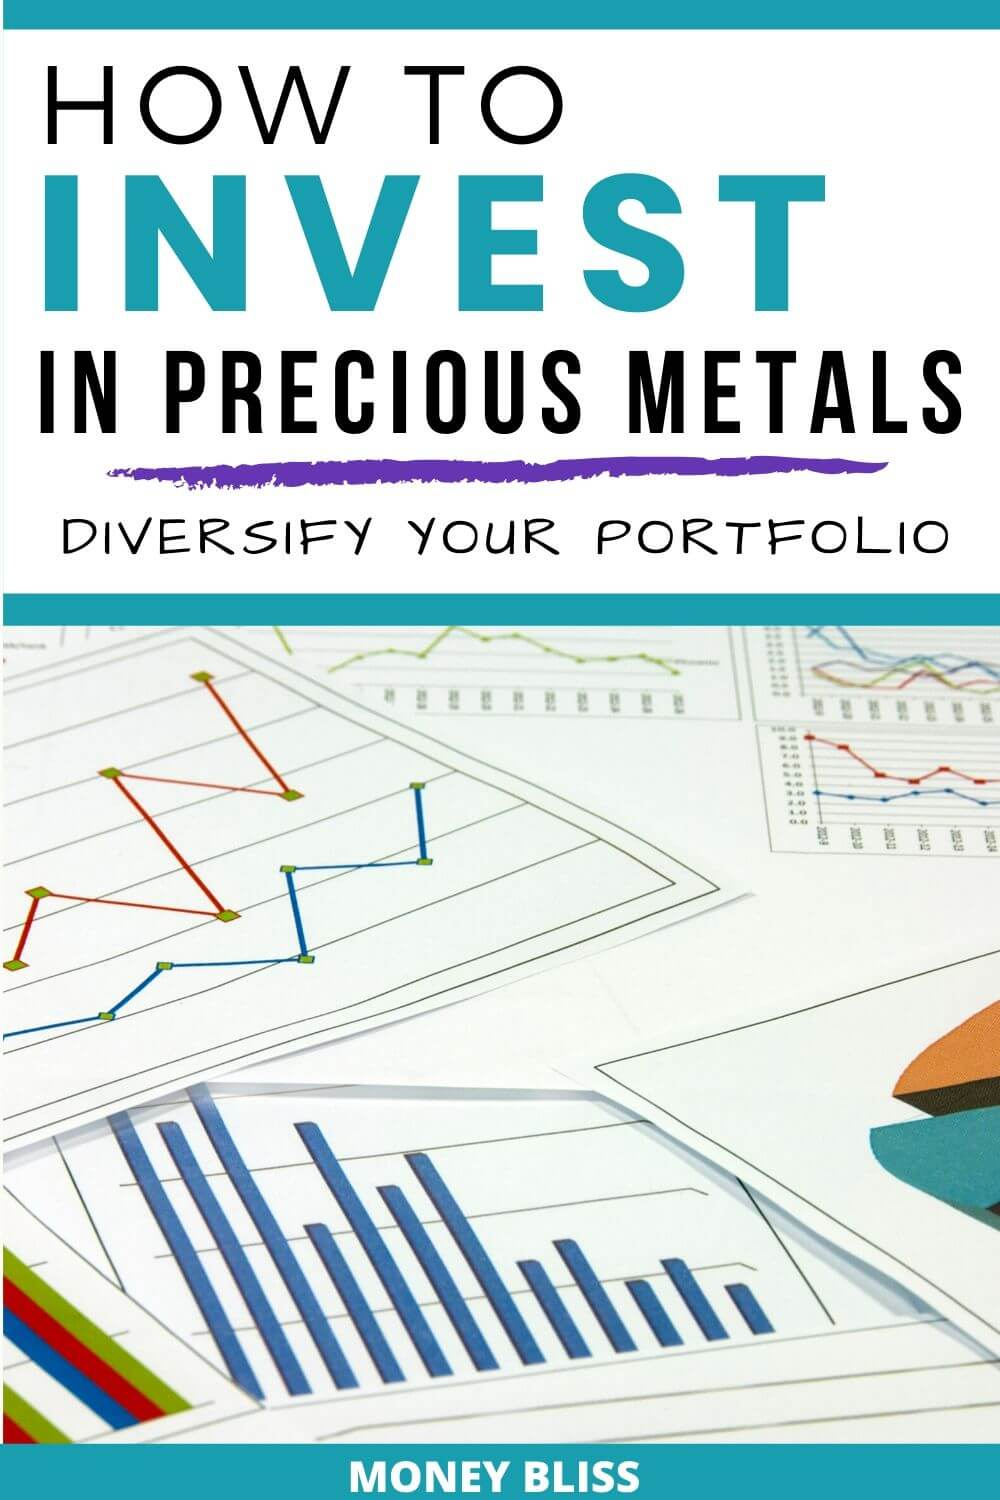 A diversified portfolio is more than just the stock market or real estate. Learn whether it is smart to invest in precious metals and the benefits of gold and silver investing. Learn how to invest in precious metals.